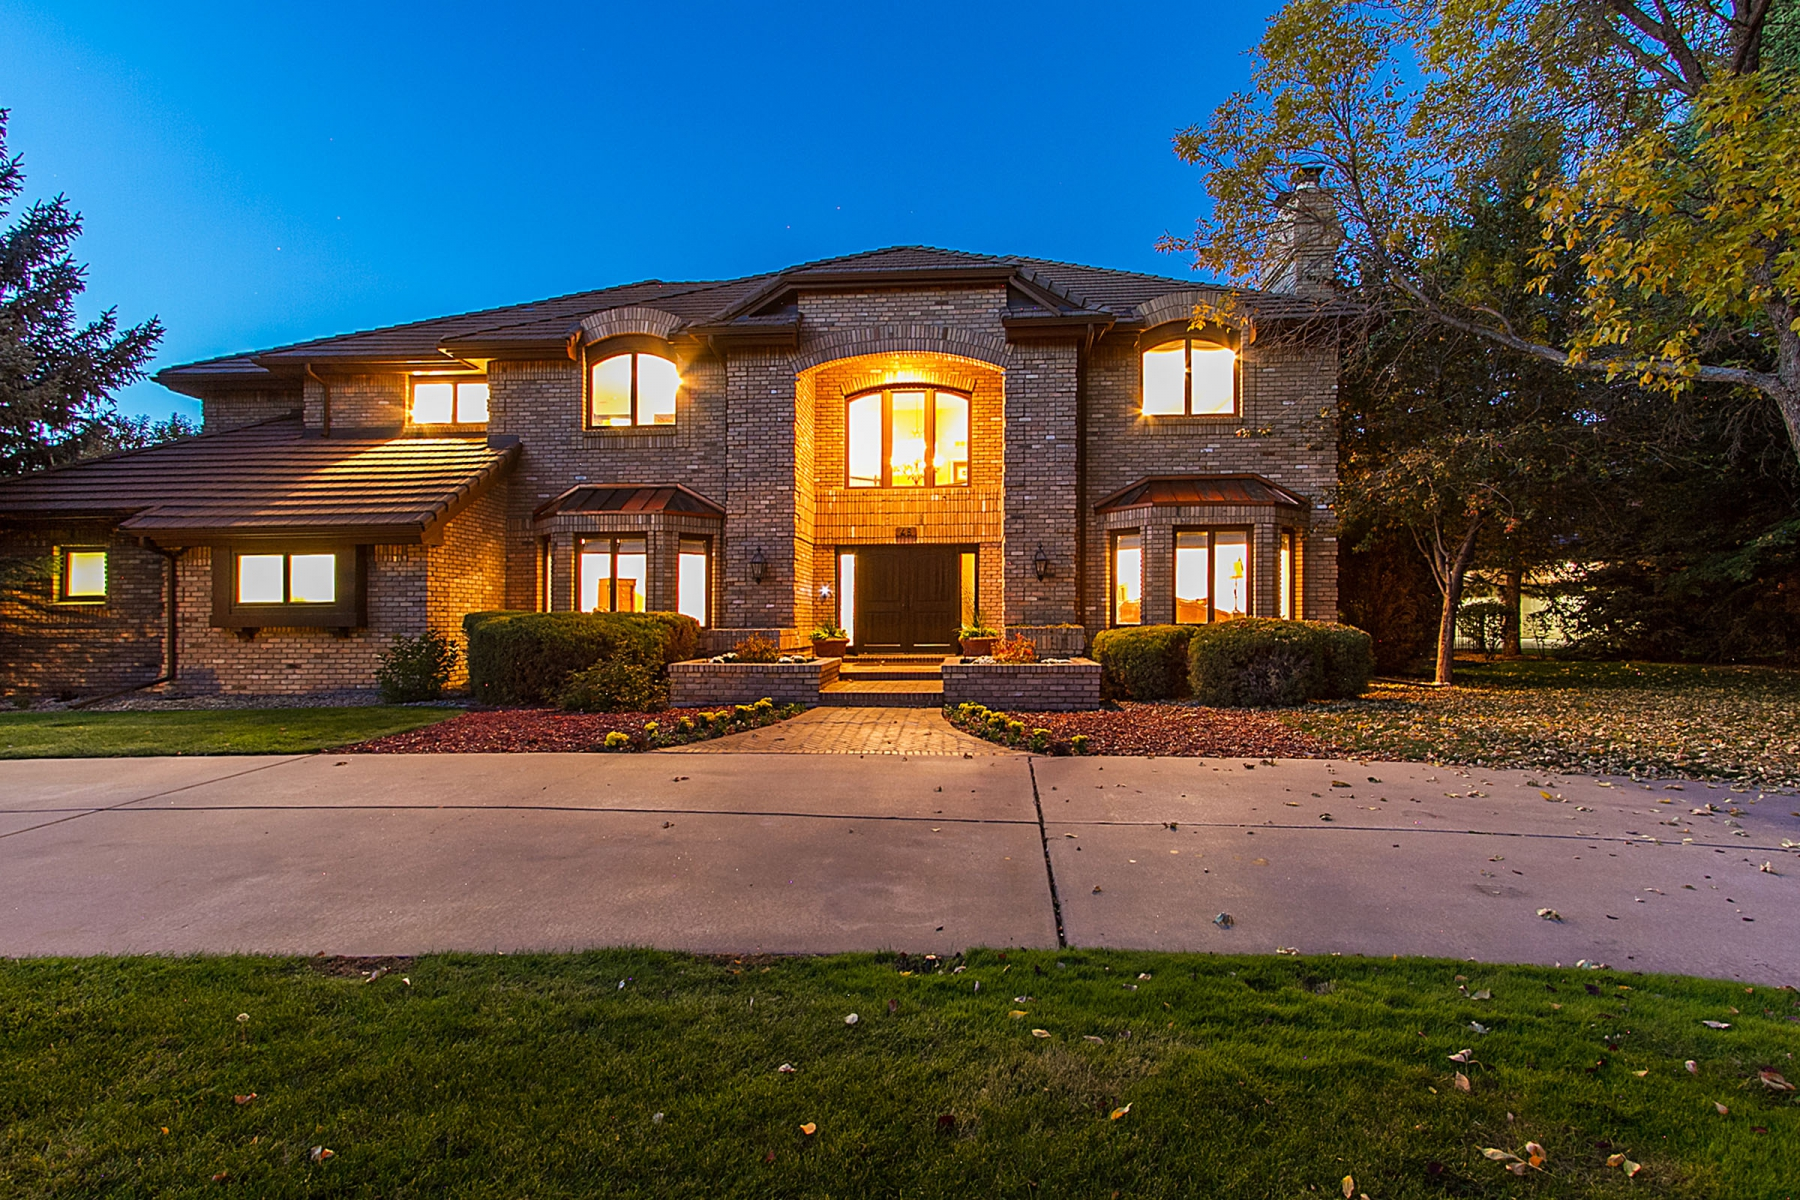 48 Glenmoor Cir, Cherry Hills Village, CO 80113